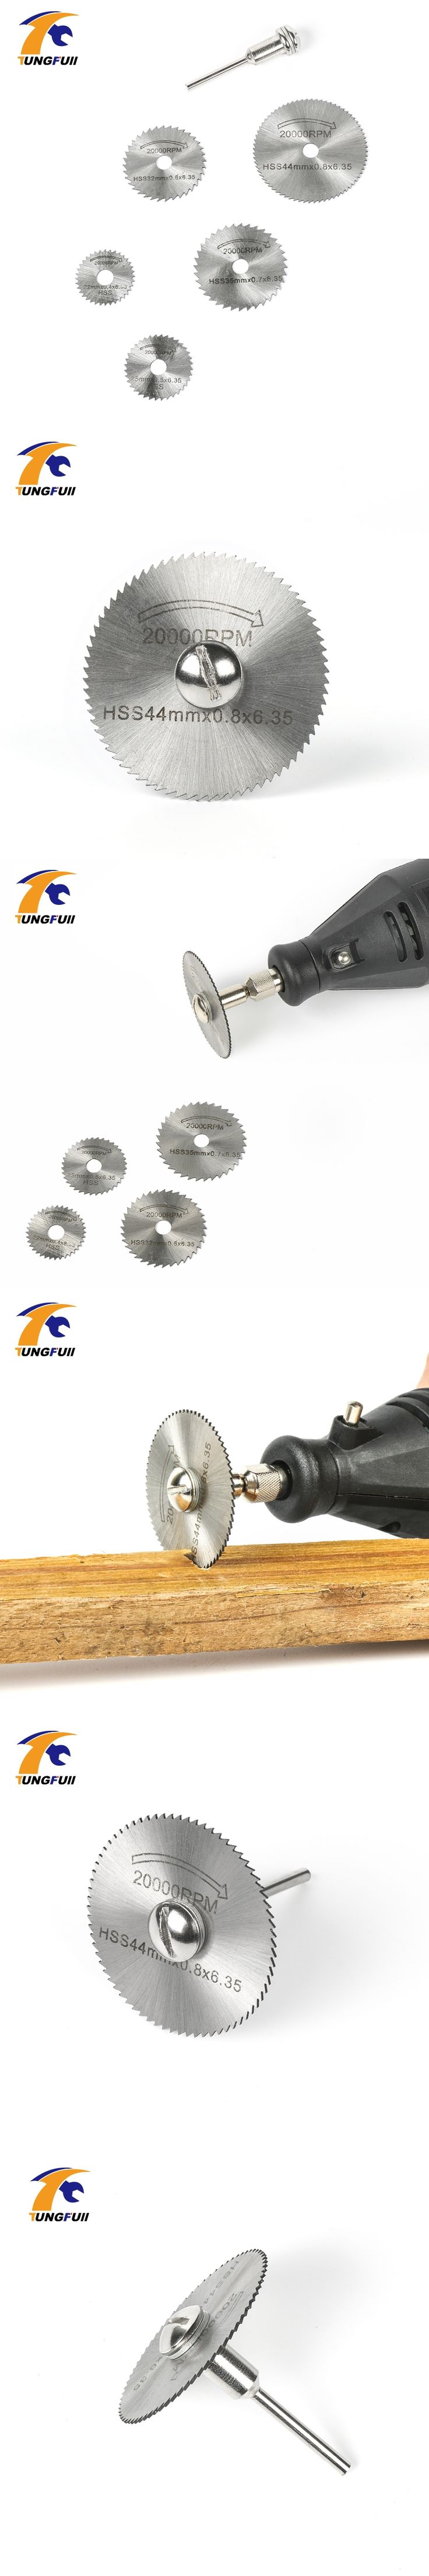 6pc HSS Saw Blades For Metal & Dremel Rotary tools (Electric grinding mill cutting discs hanging 5 saws+1Rod)